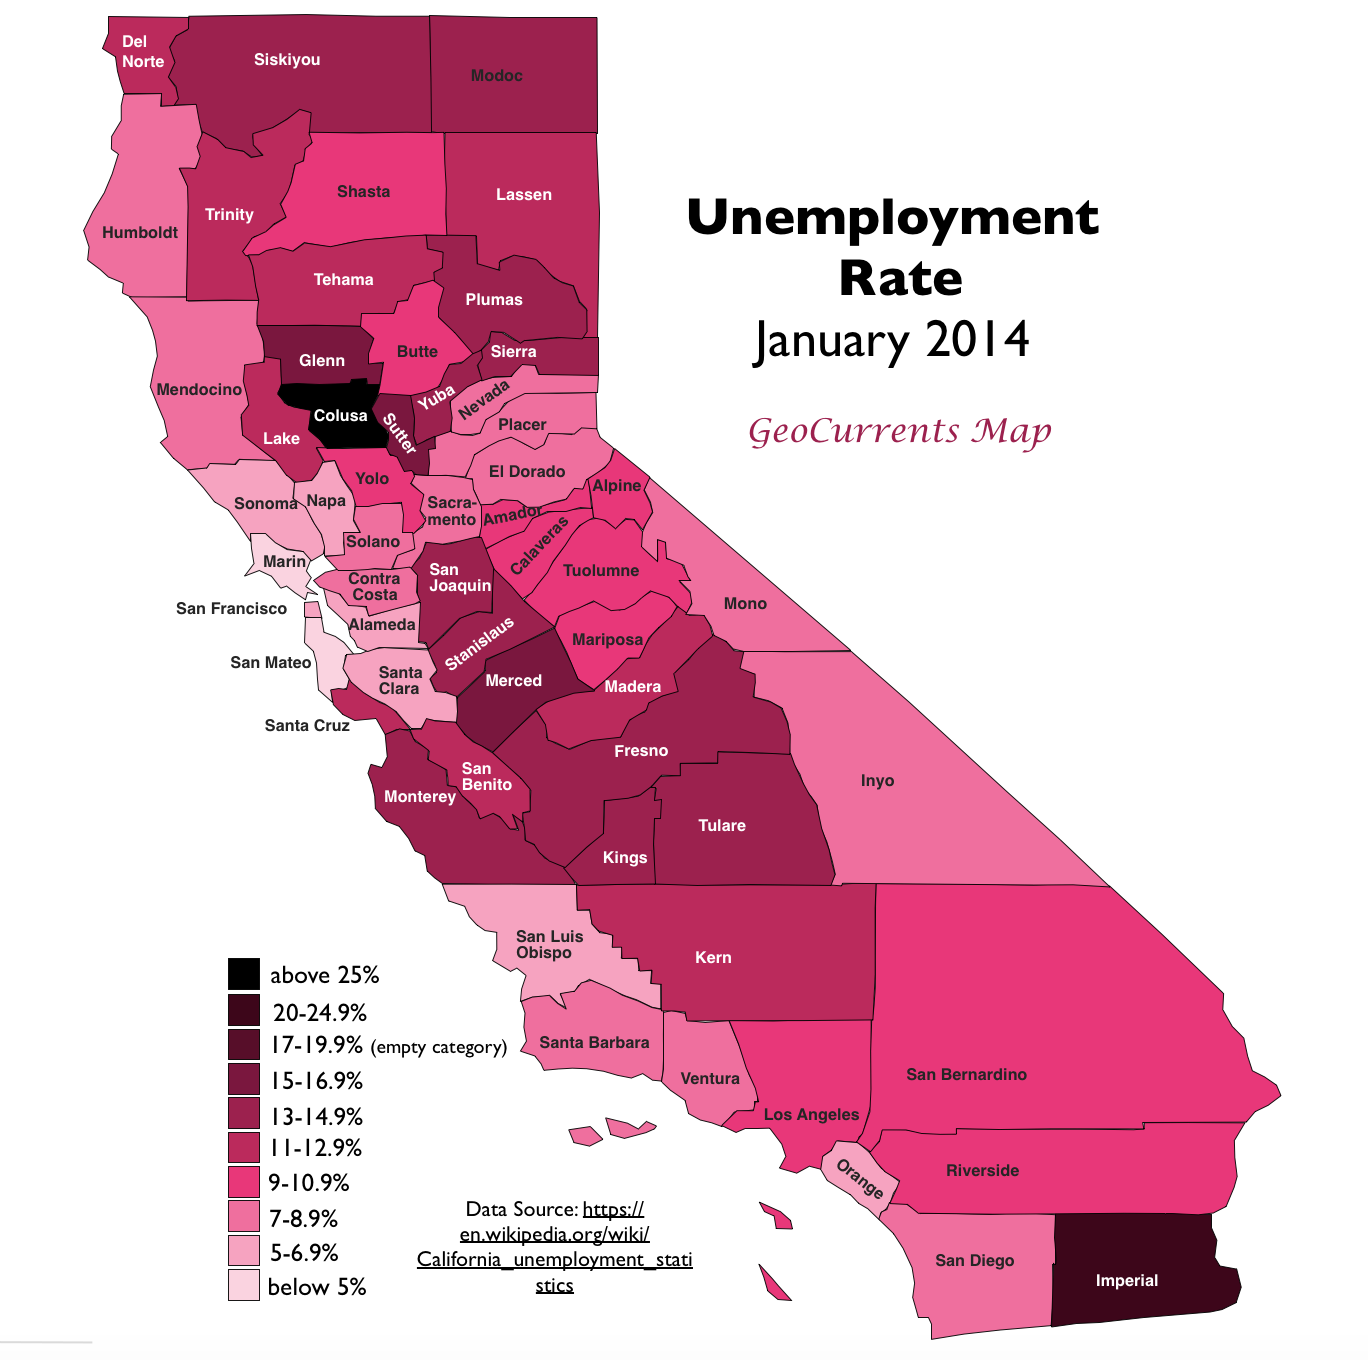 unemployment rate january 2014